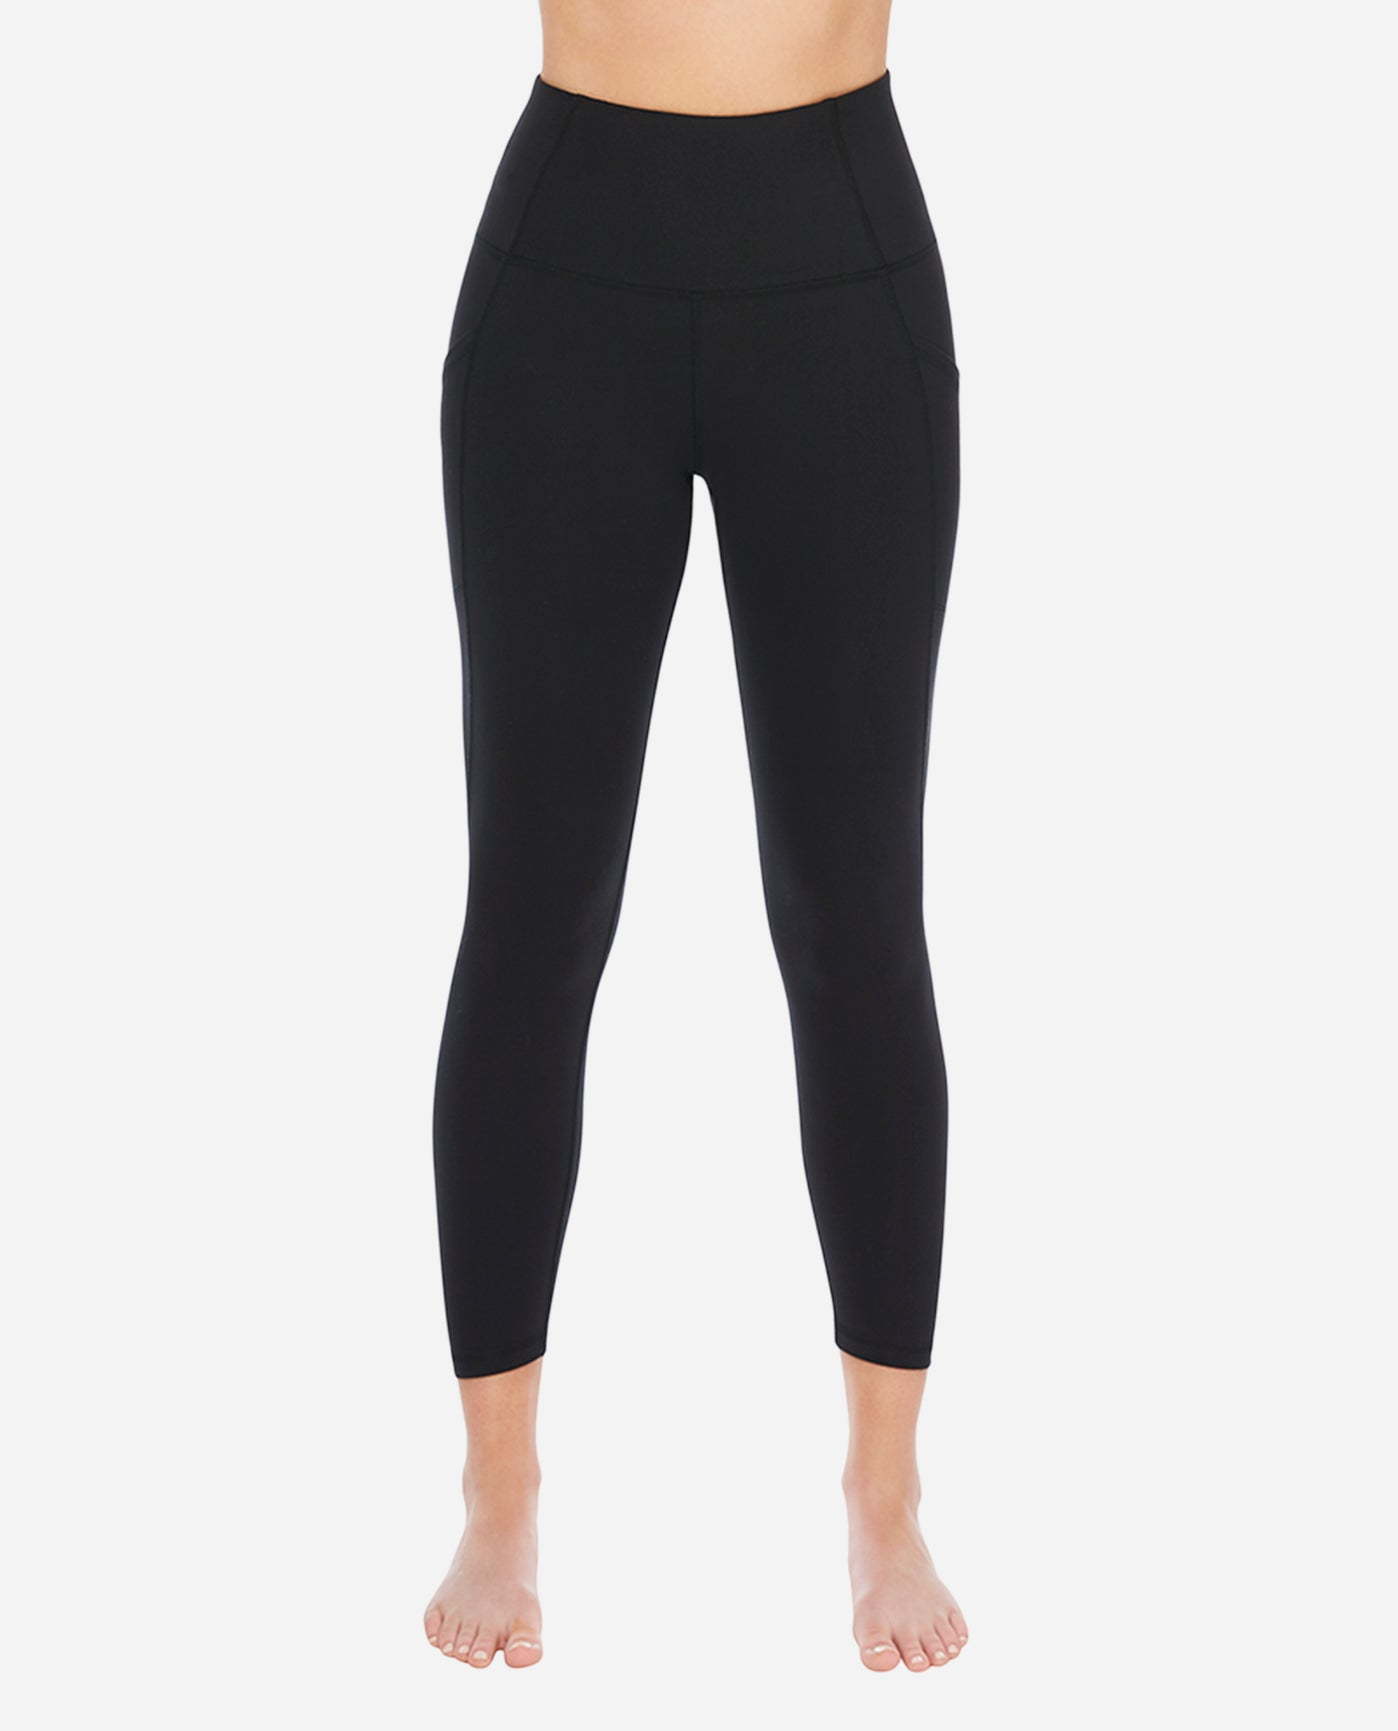 b5e58798e5ff5 7/8 Compression Legging